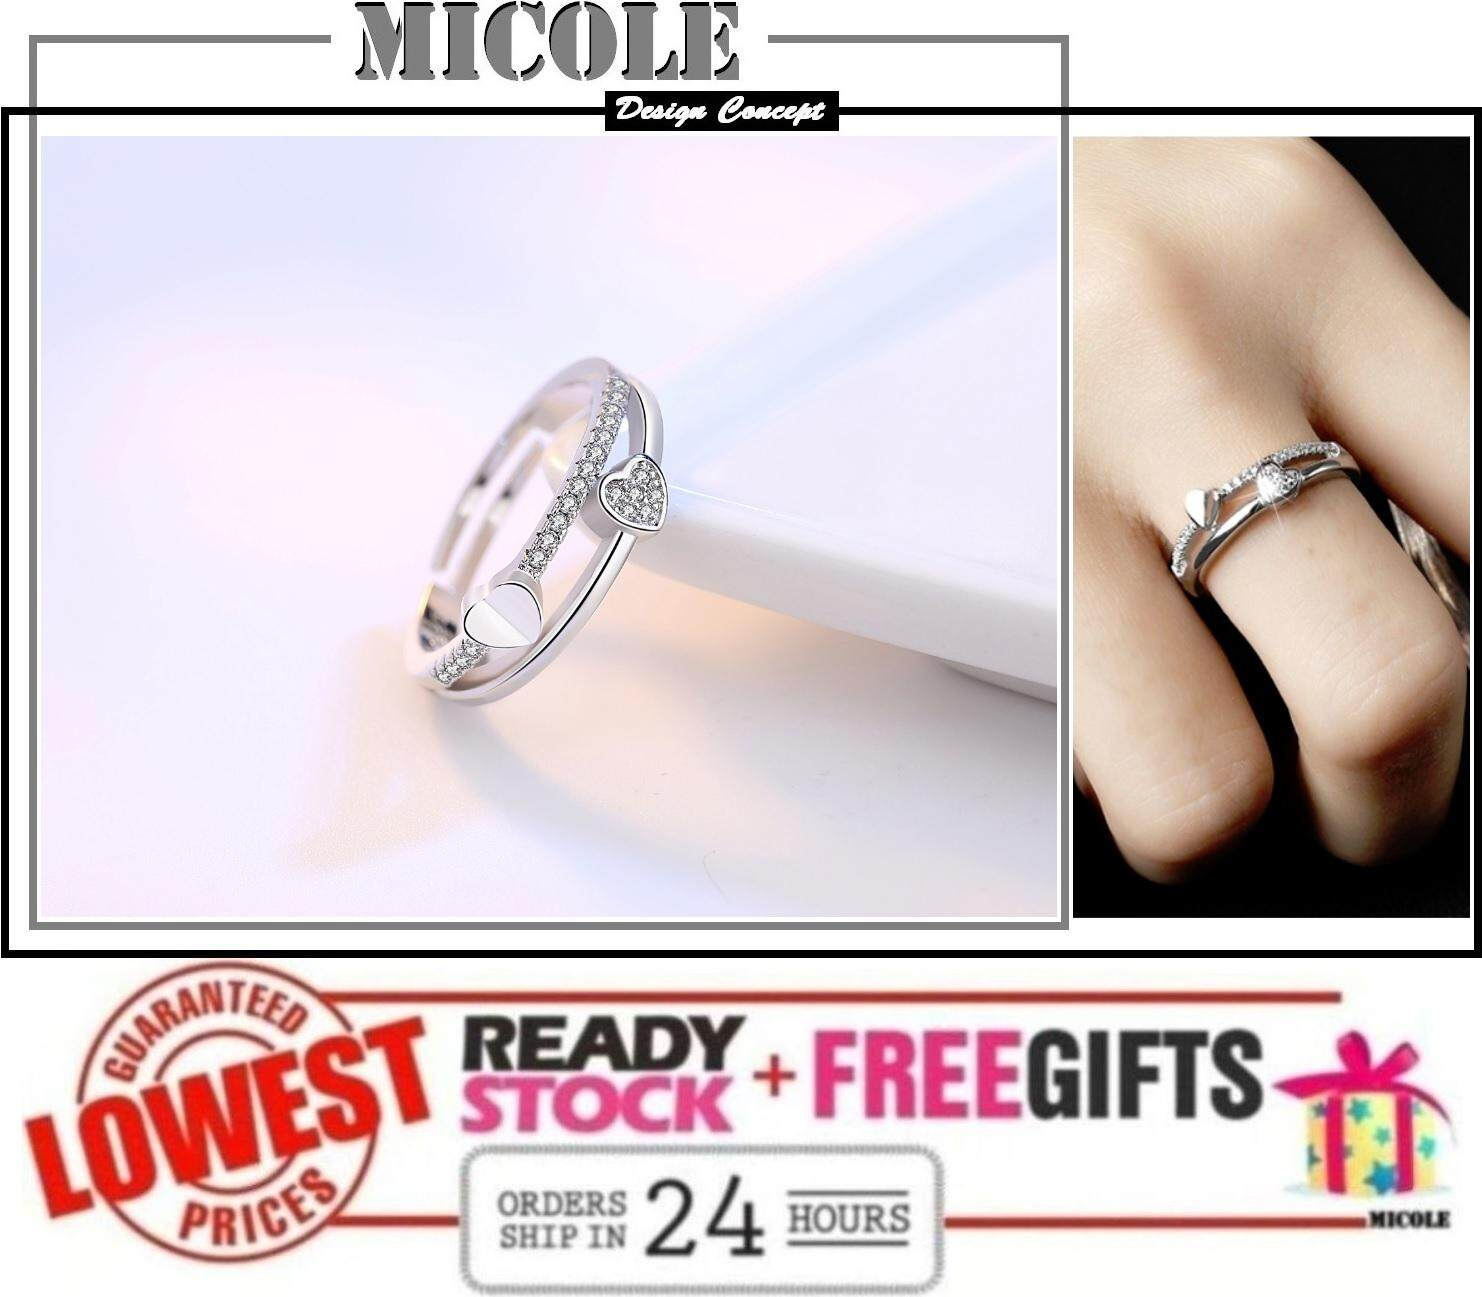 MICOLE RF3004 White Gold Plated Adjustable Ring Cincin